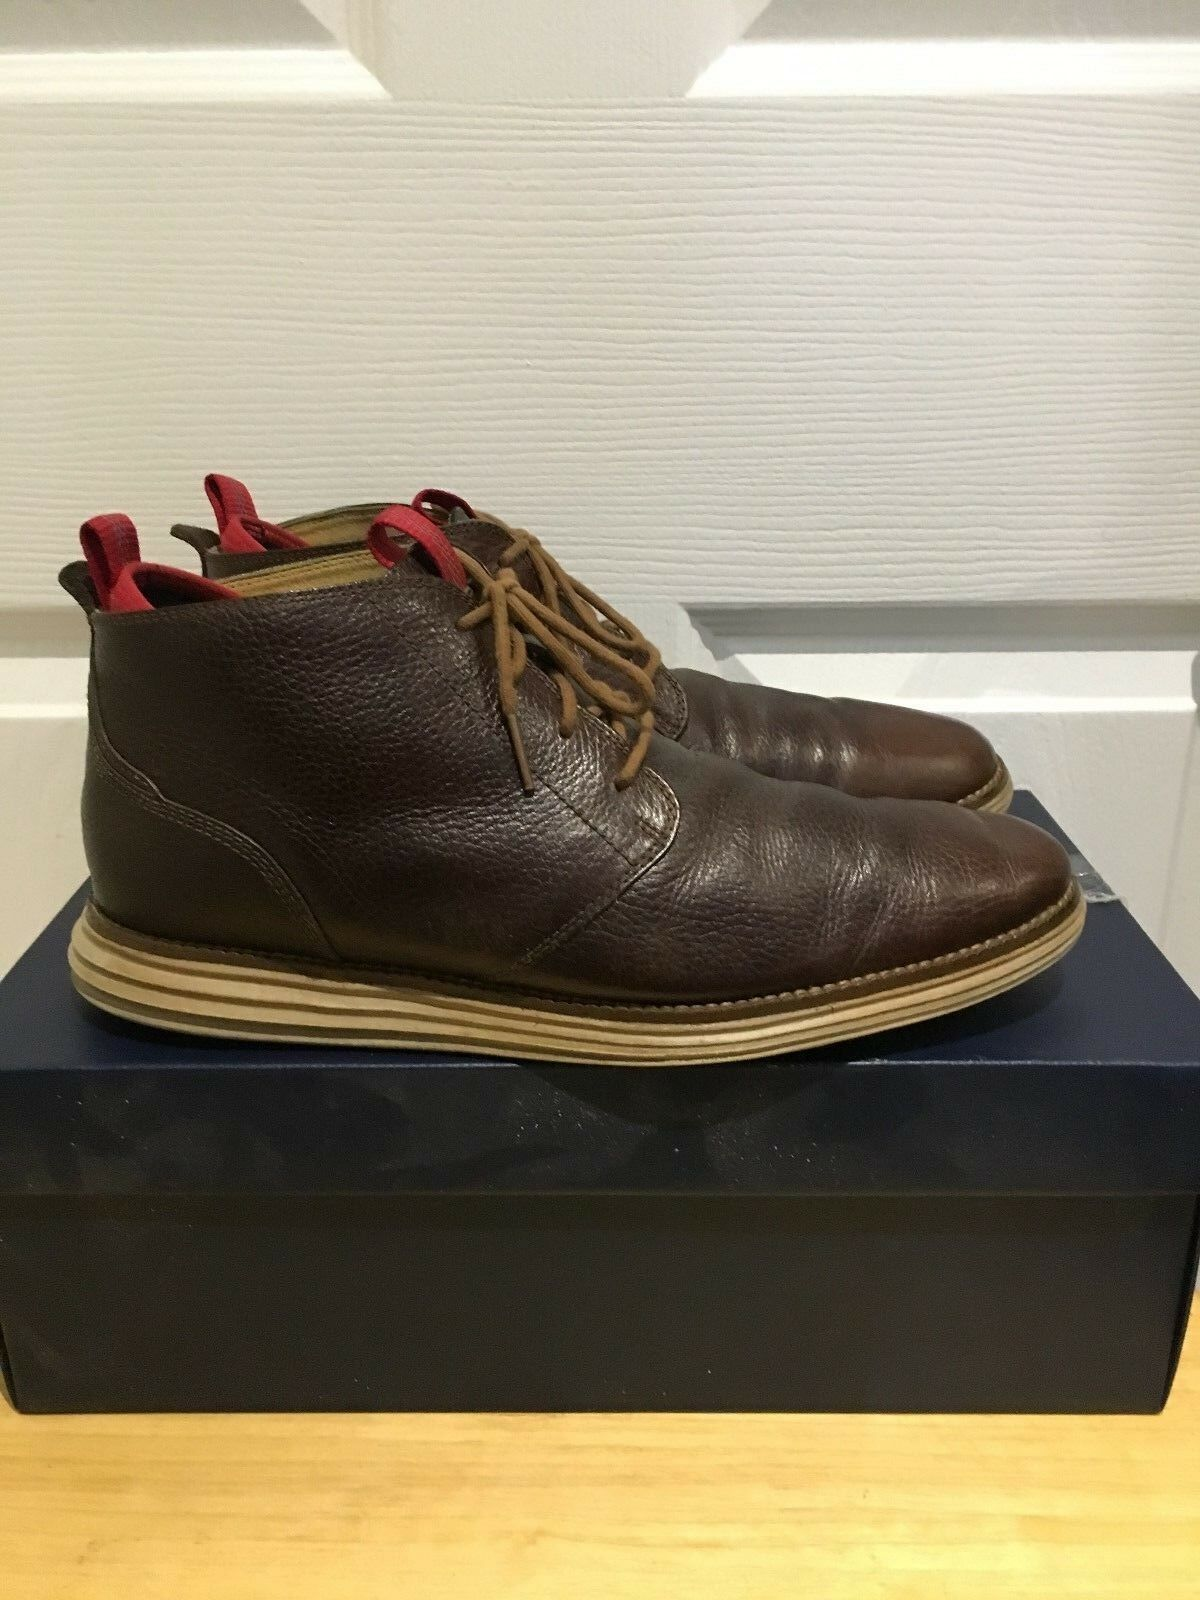 Cole Haan Original Grand Chukka Boots Men's Shoes Size 9.5 - Brown